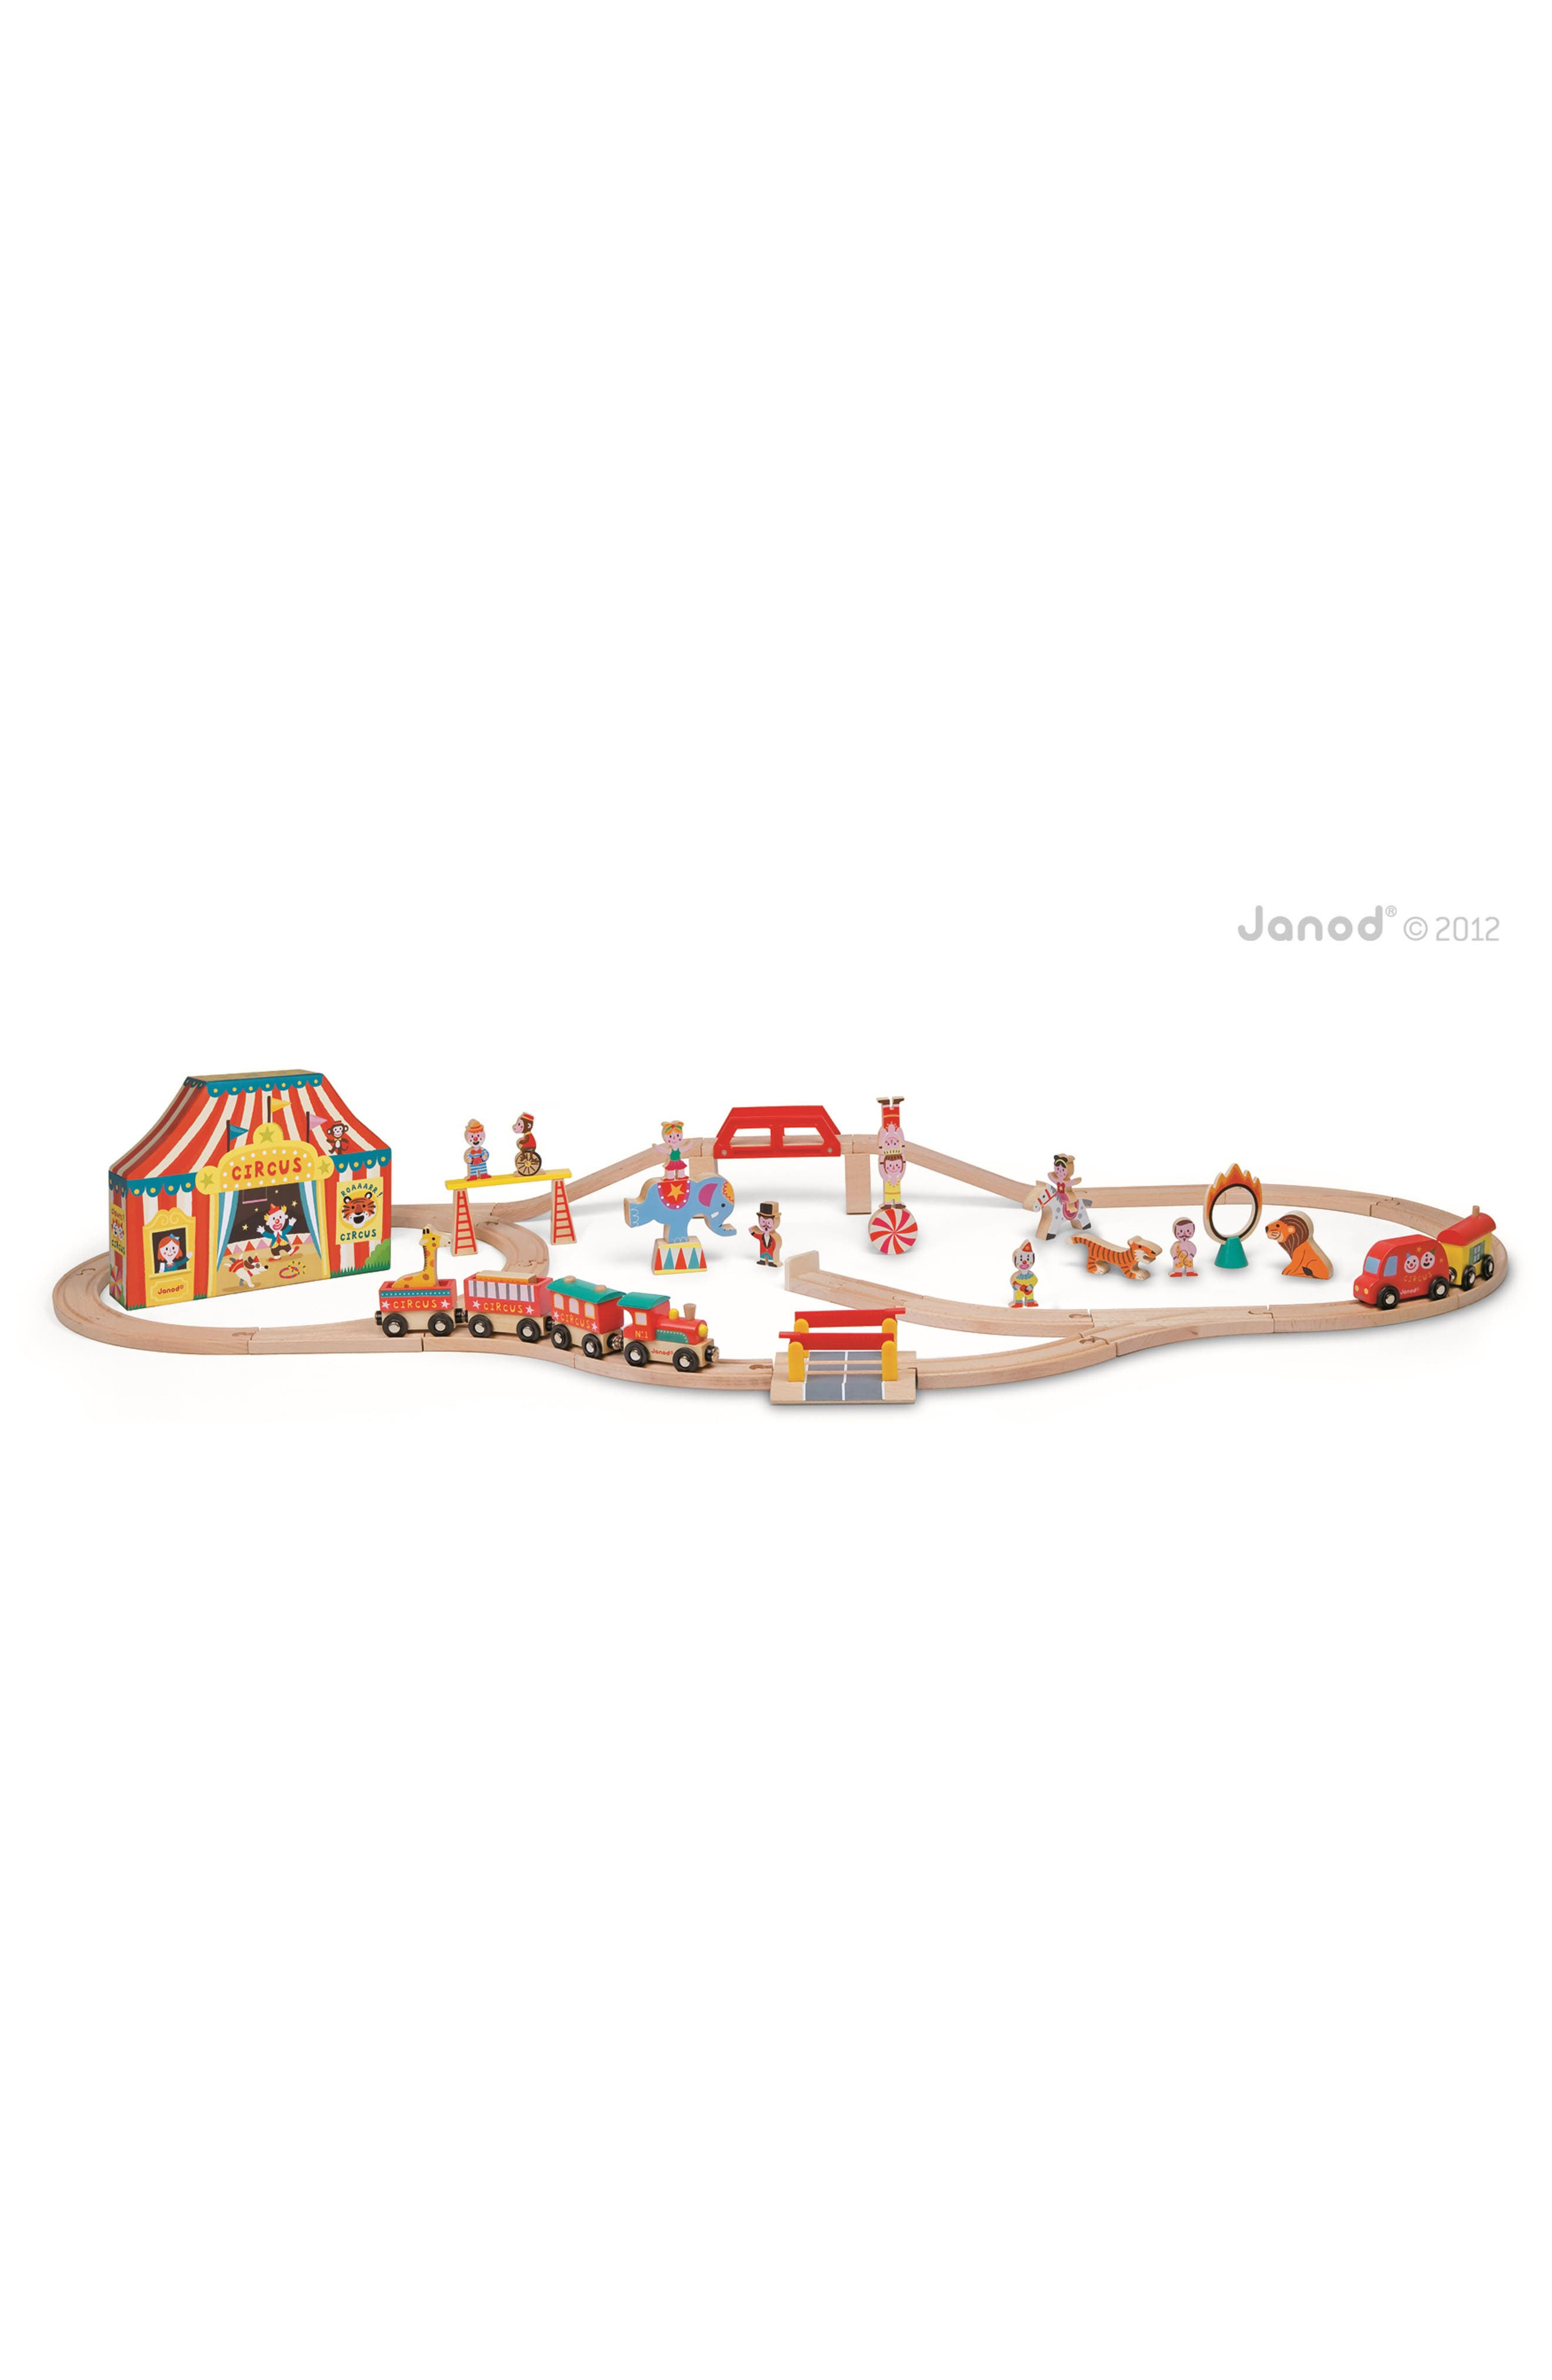 Janod 'Story Express - Circus' Train Set